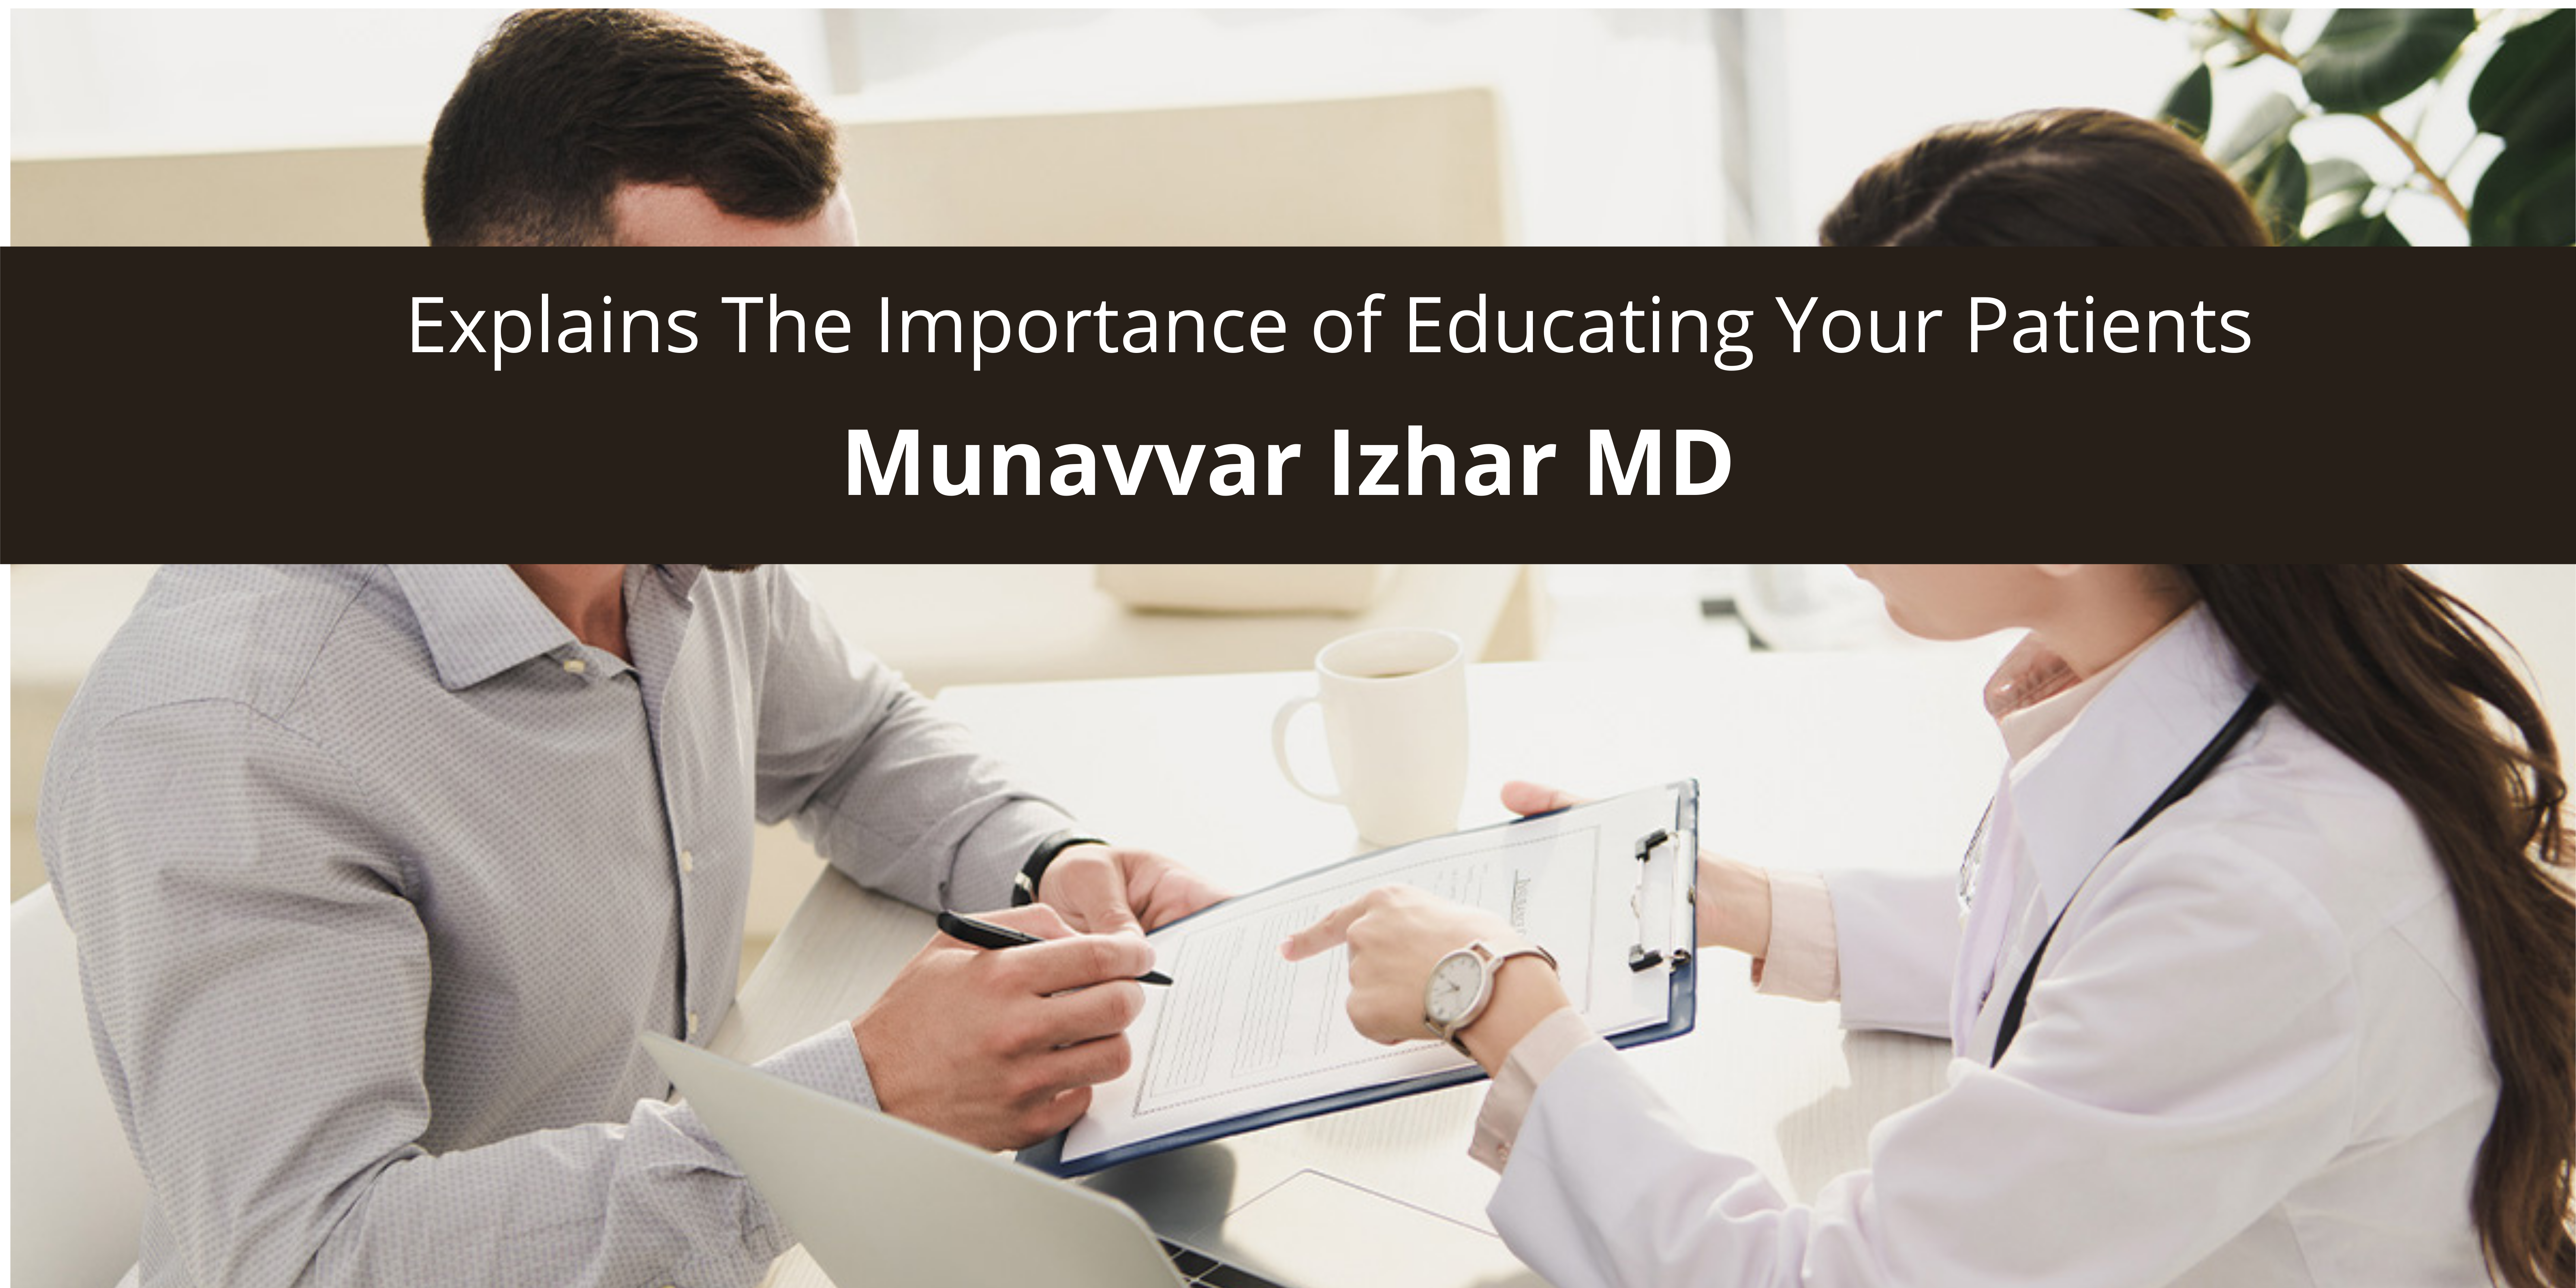 Munavvar Izhar MD Explains The Importance of Educating Your Patients